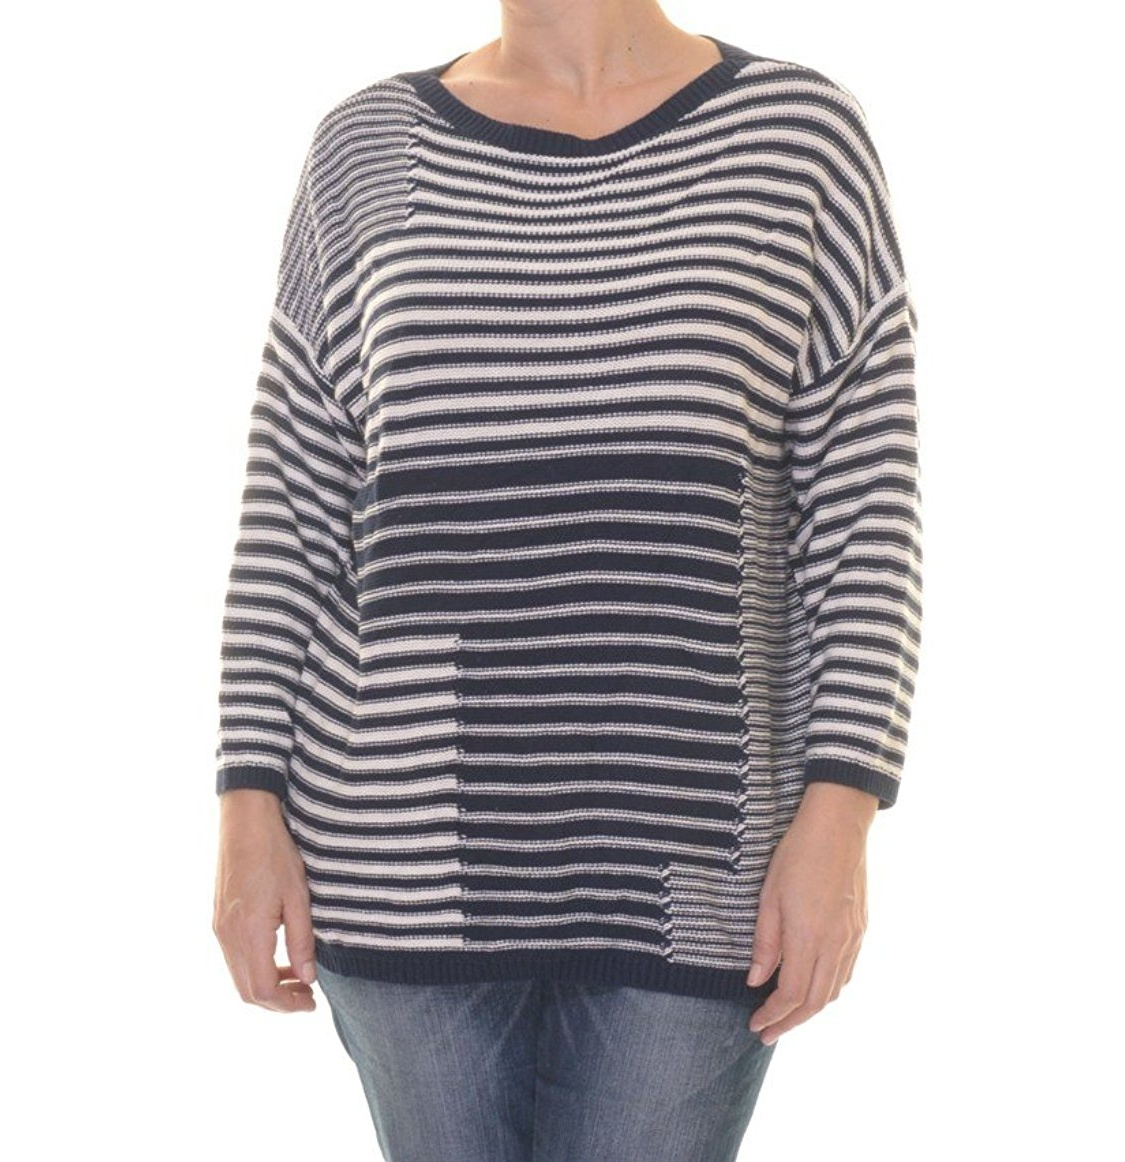 American Living Striped Printed Three Quarter Sleeve Sweater